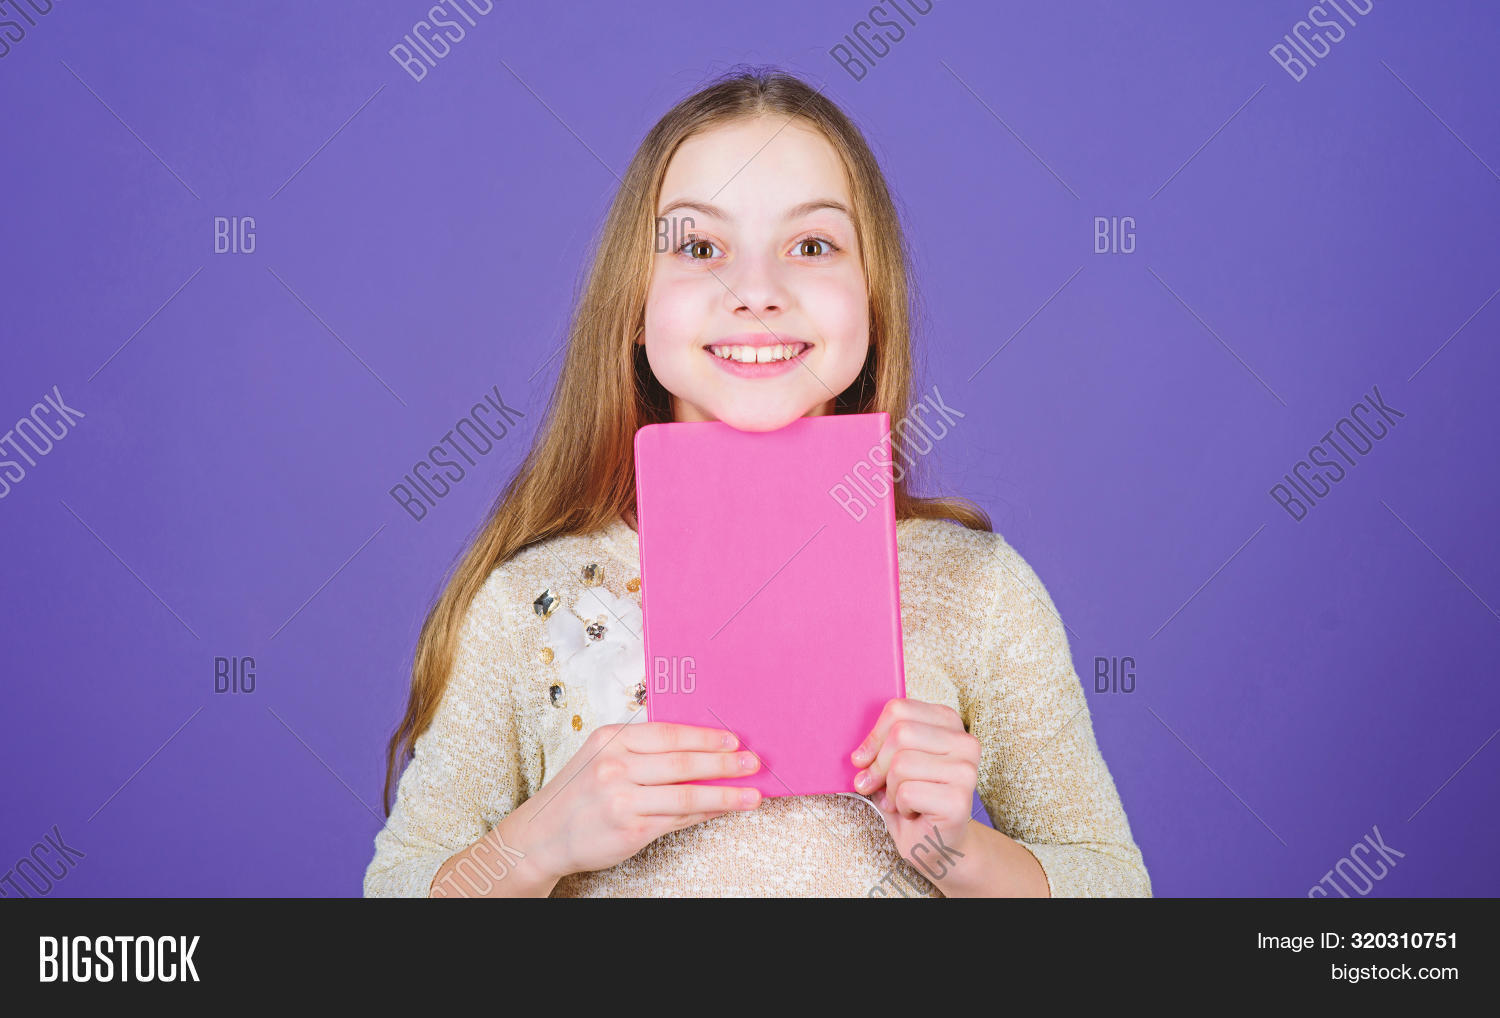 Study What You Love And Intern In What You Want To Do. Adorable Little Girl Holding Study Book With